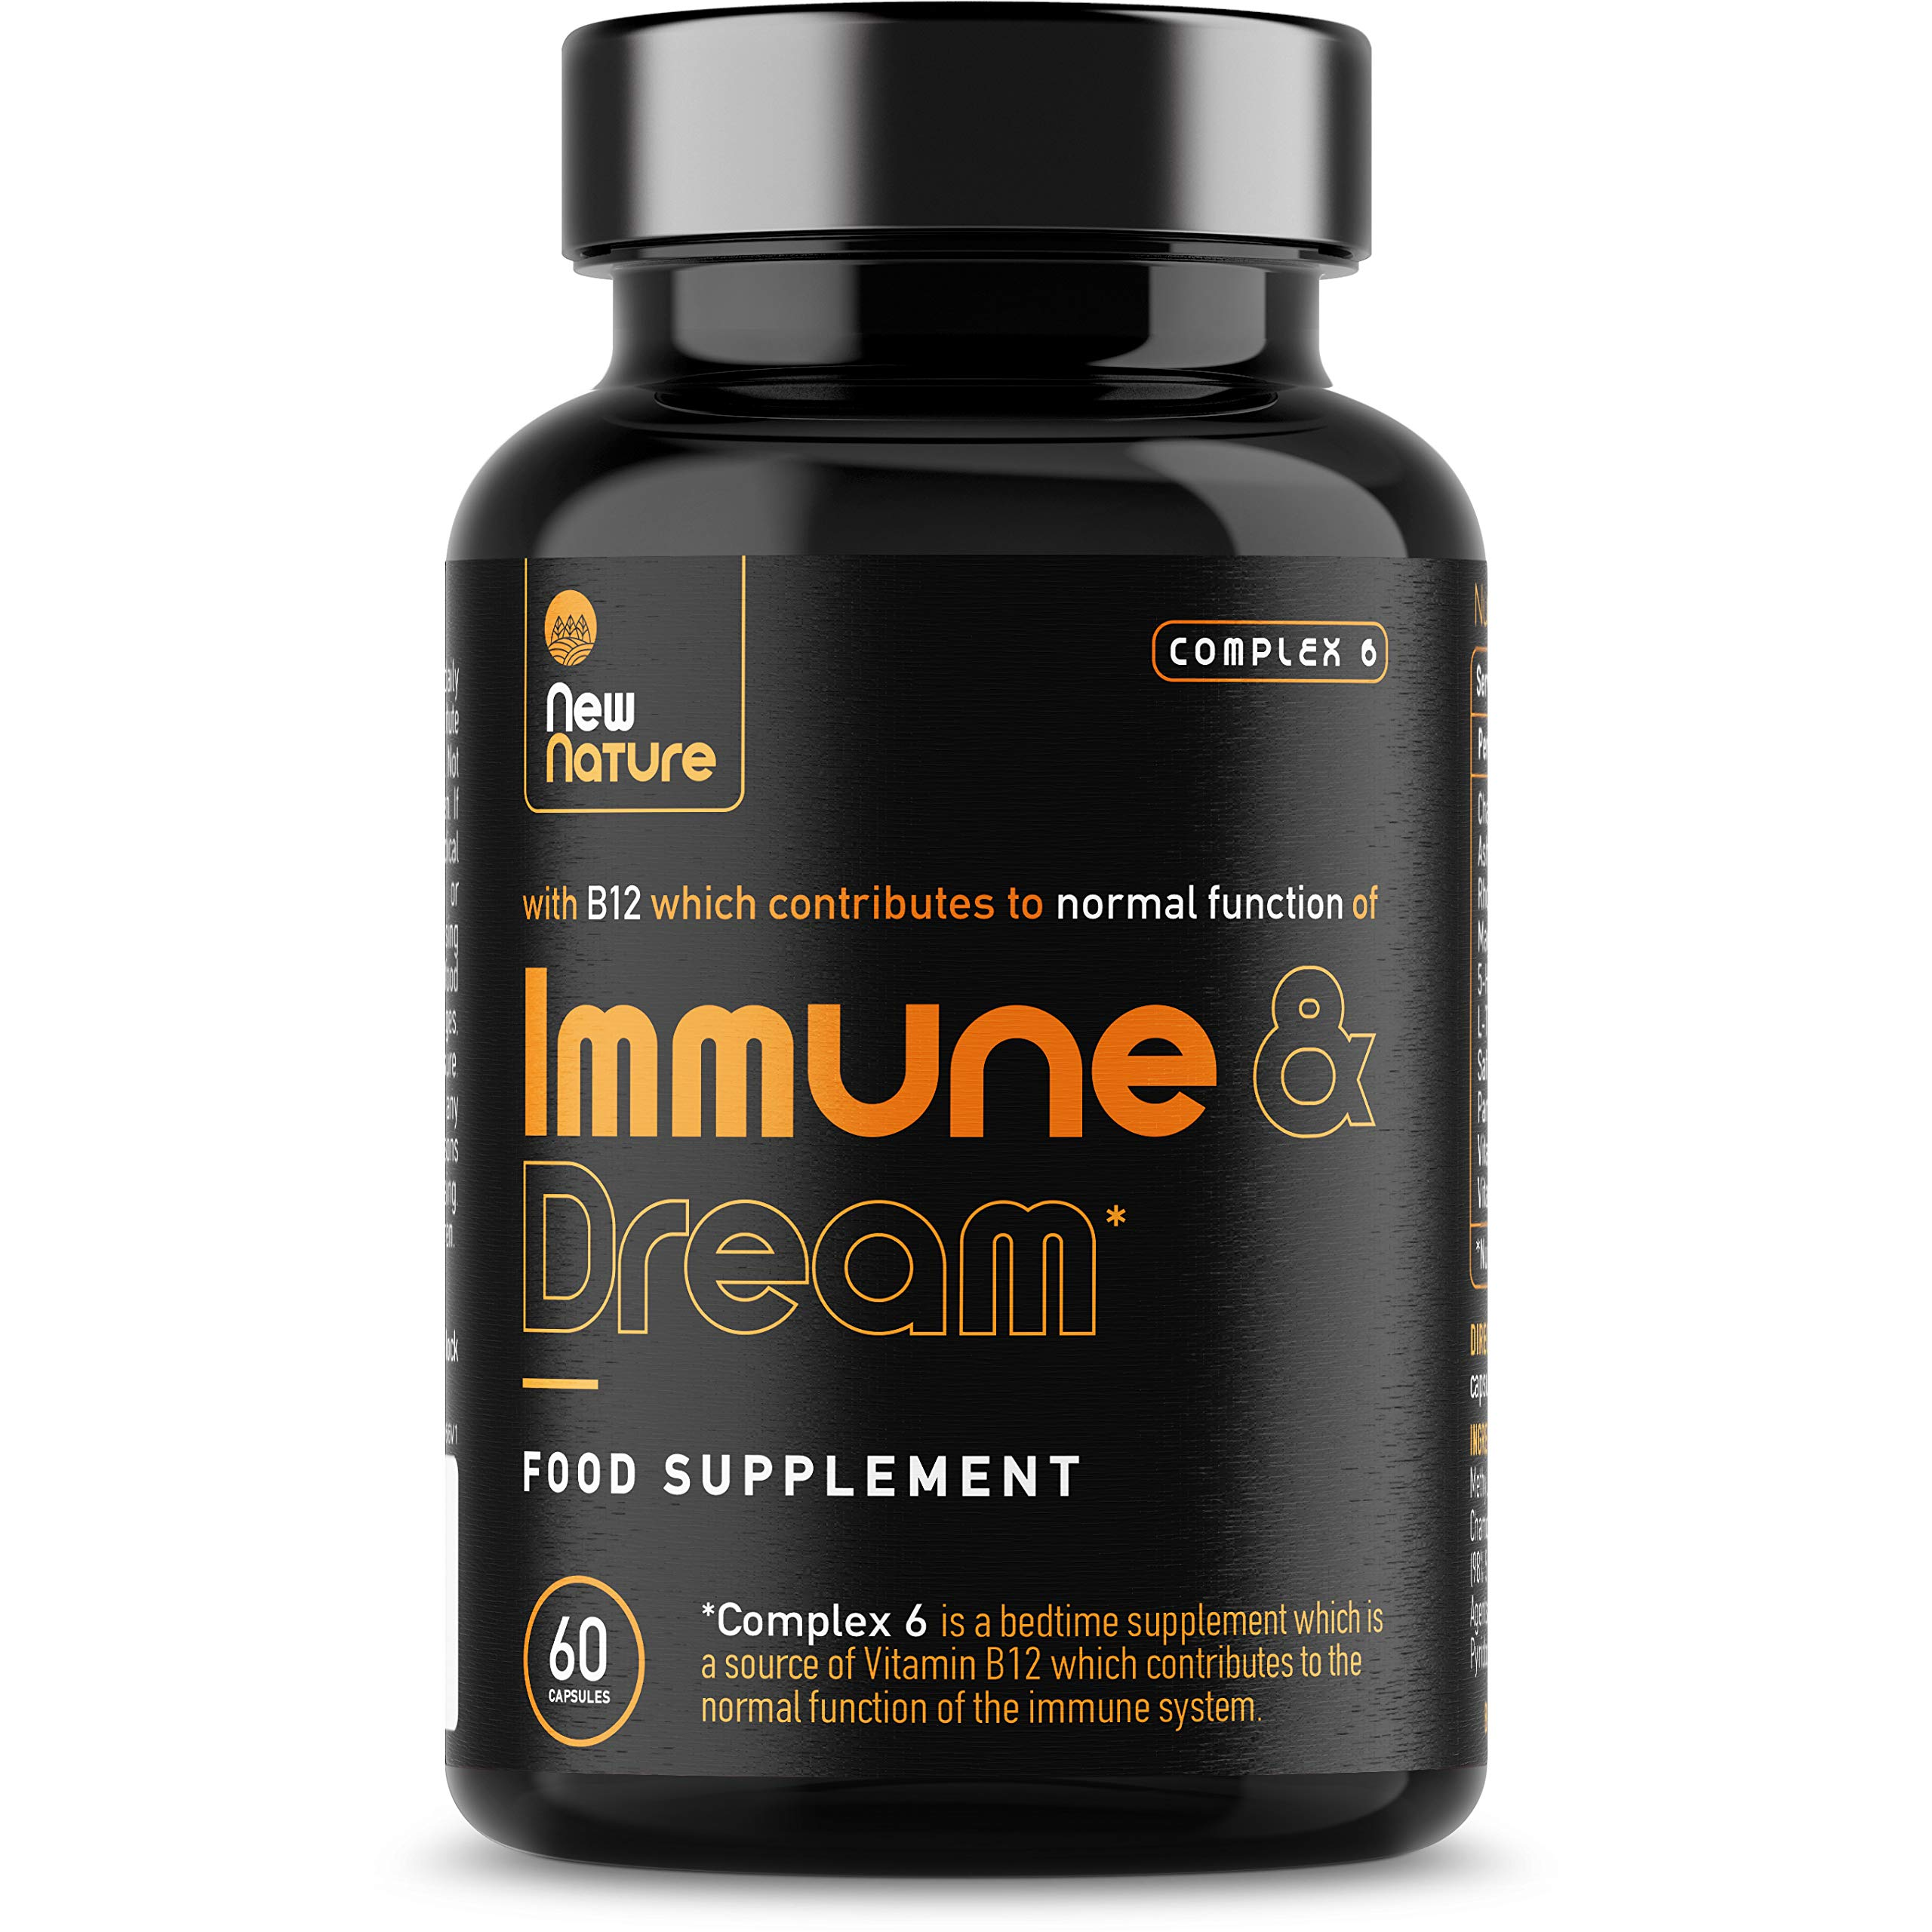 Complex 6 - Immune & Dream - The Bedtime Sleep Aid Supplement with Vitamin B12 to Support The Immune System - Natural Melatonin for Sleep - 60 Vegan Capsules (30 Day Supply)